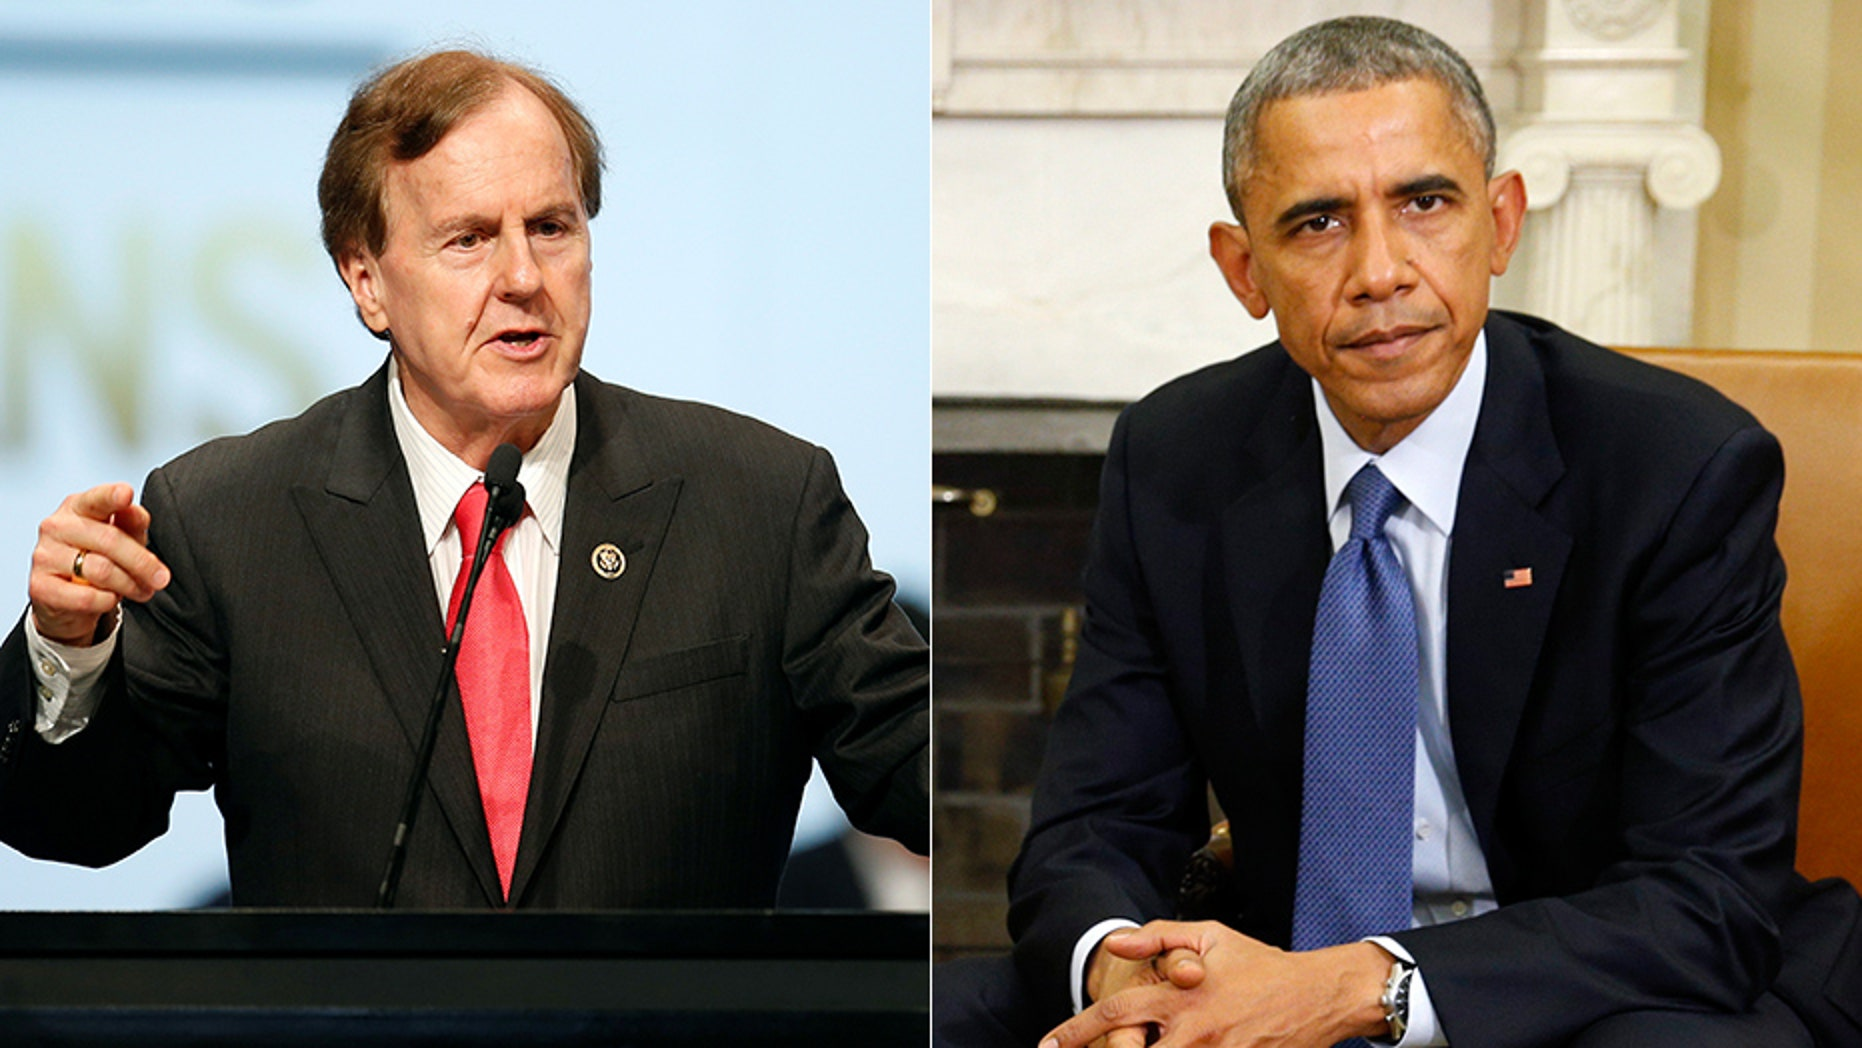 Rep. Robert Pittenger of North Carolina called for an investigation into a report on the Obama administration's handling of an anti-Hezbollah task force.